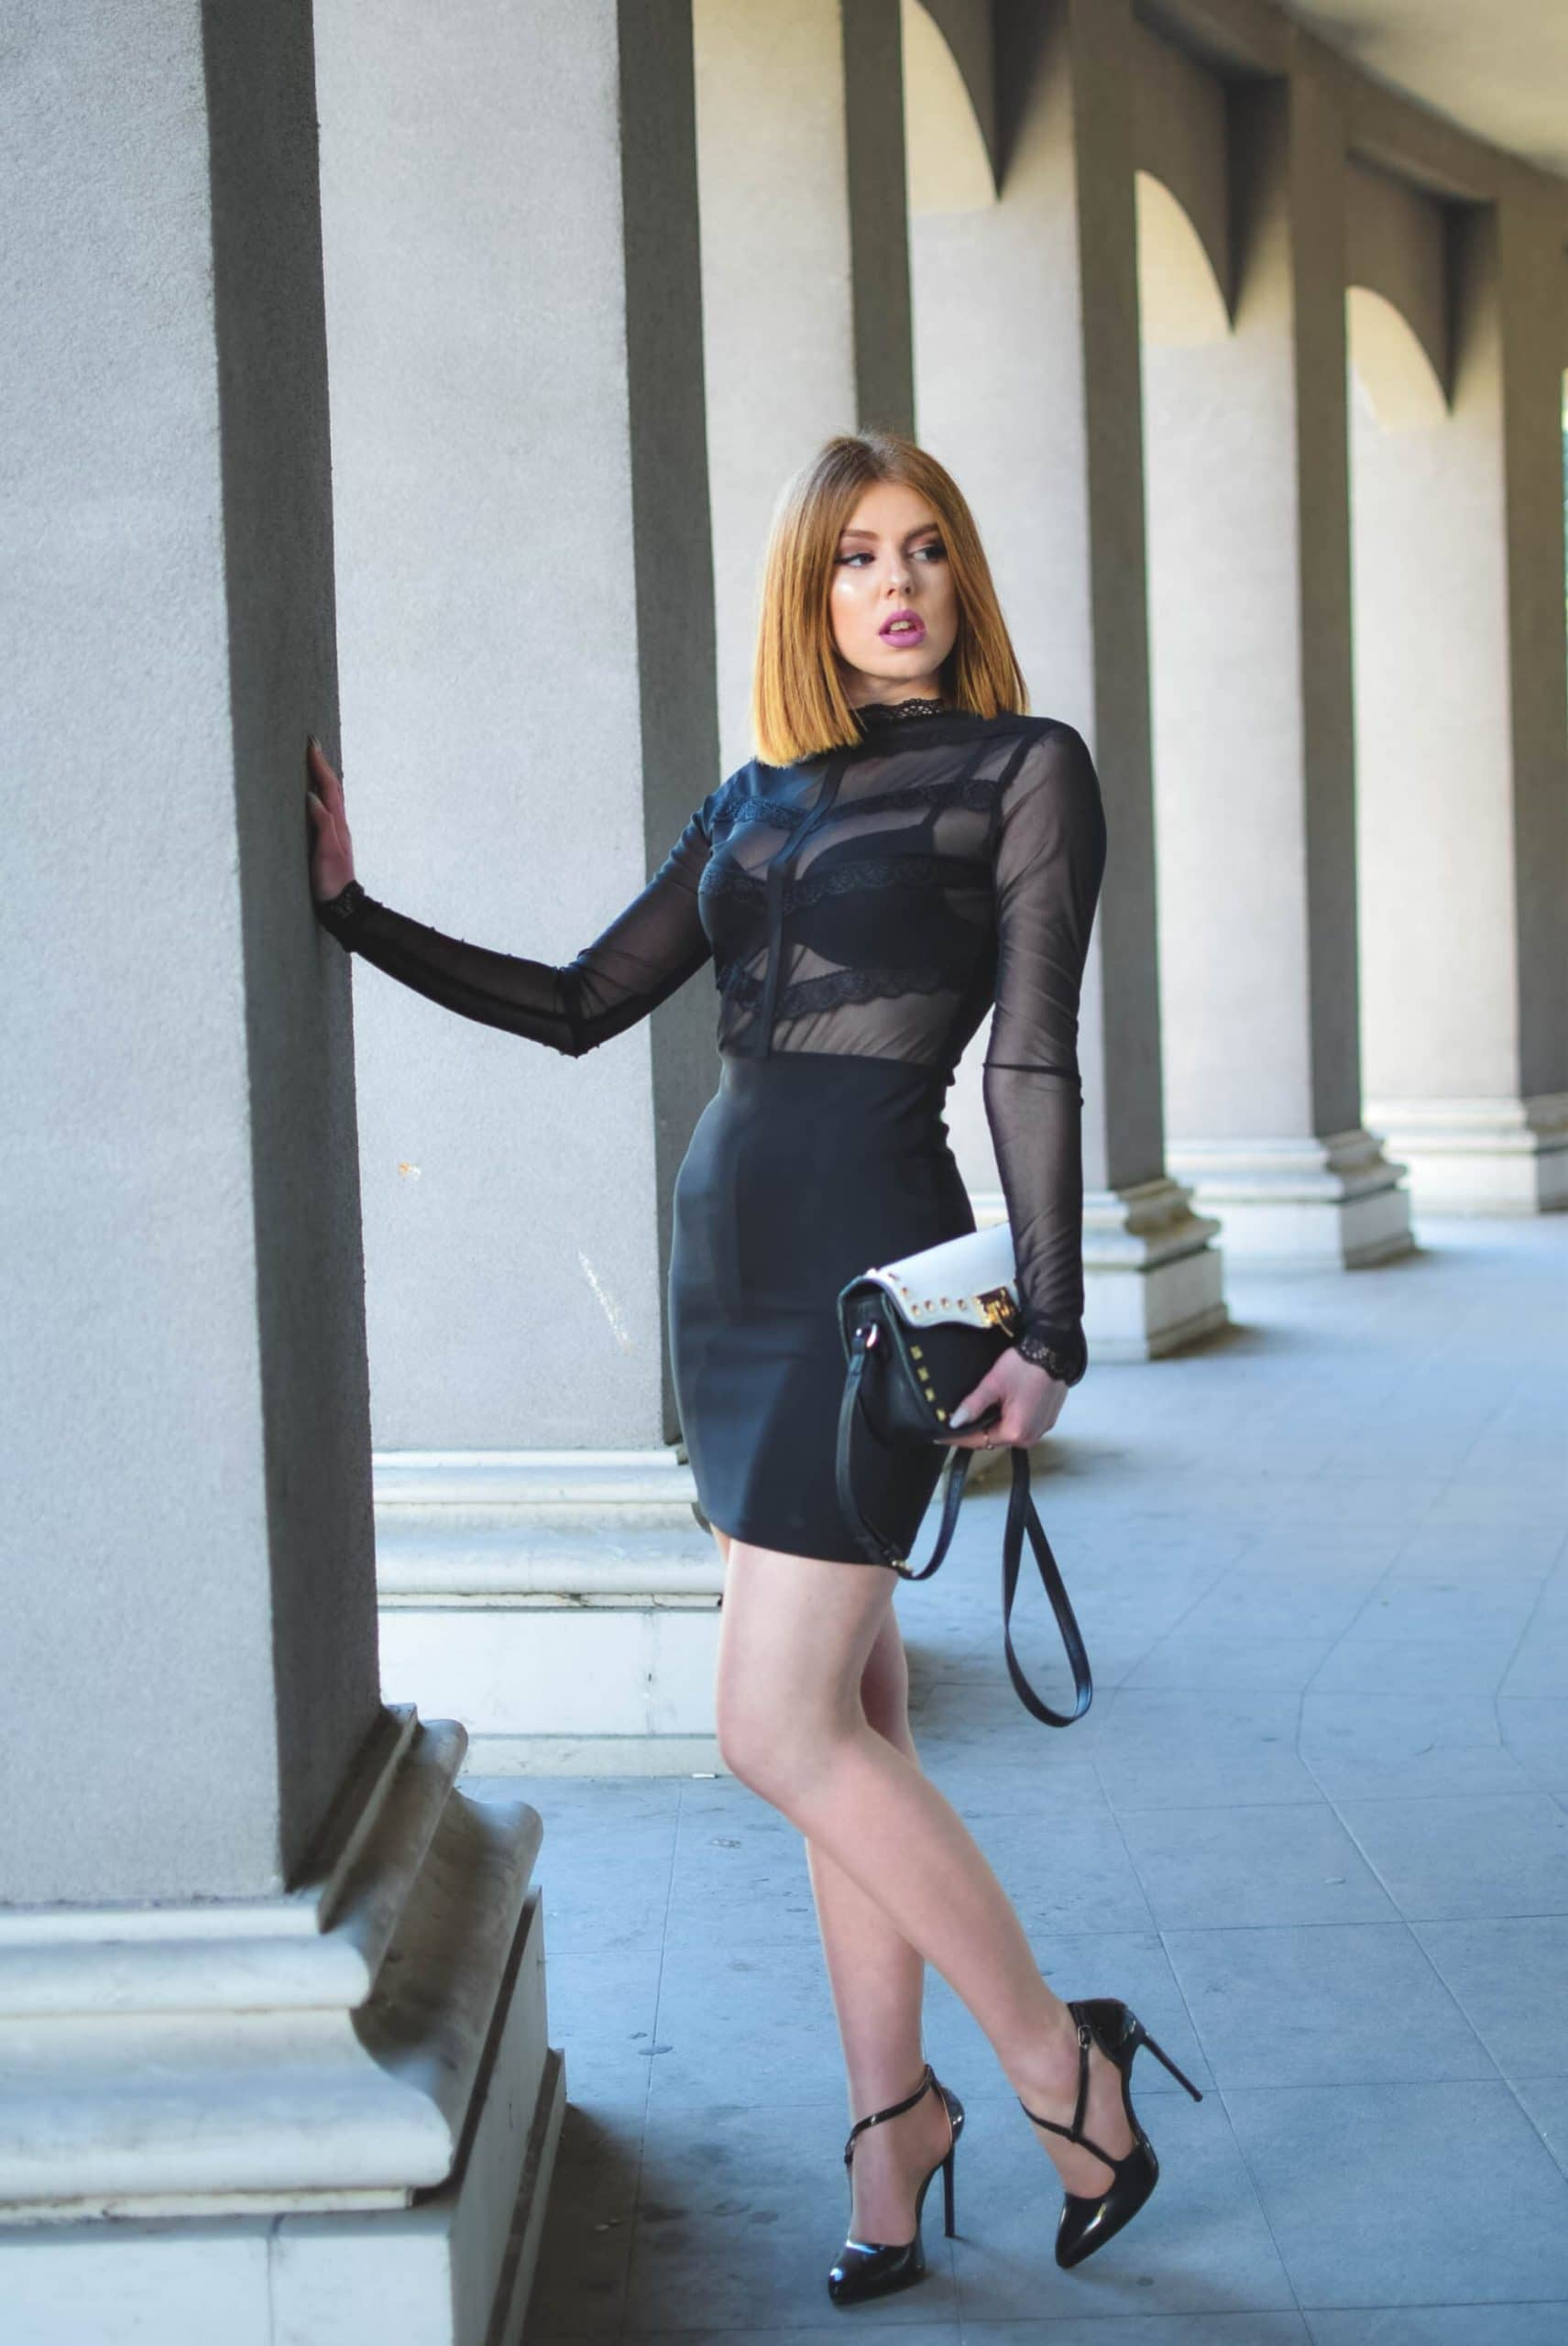 Beautiful Women Wearing a See through blouse showing her black bra, a Classic Black Skirt in nylons and High Heels